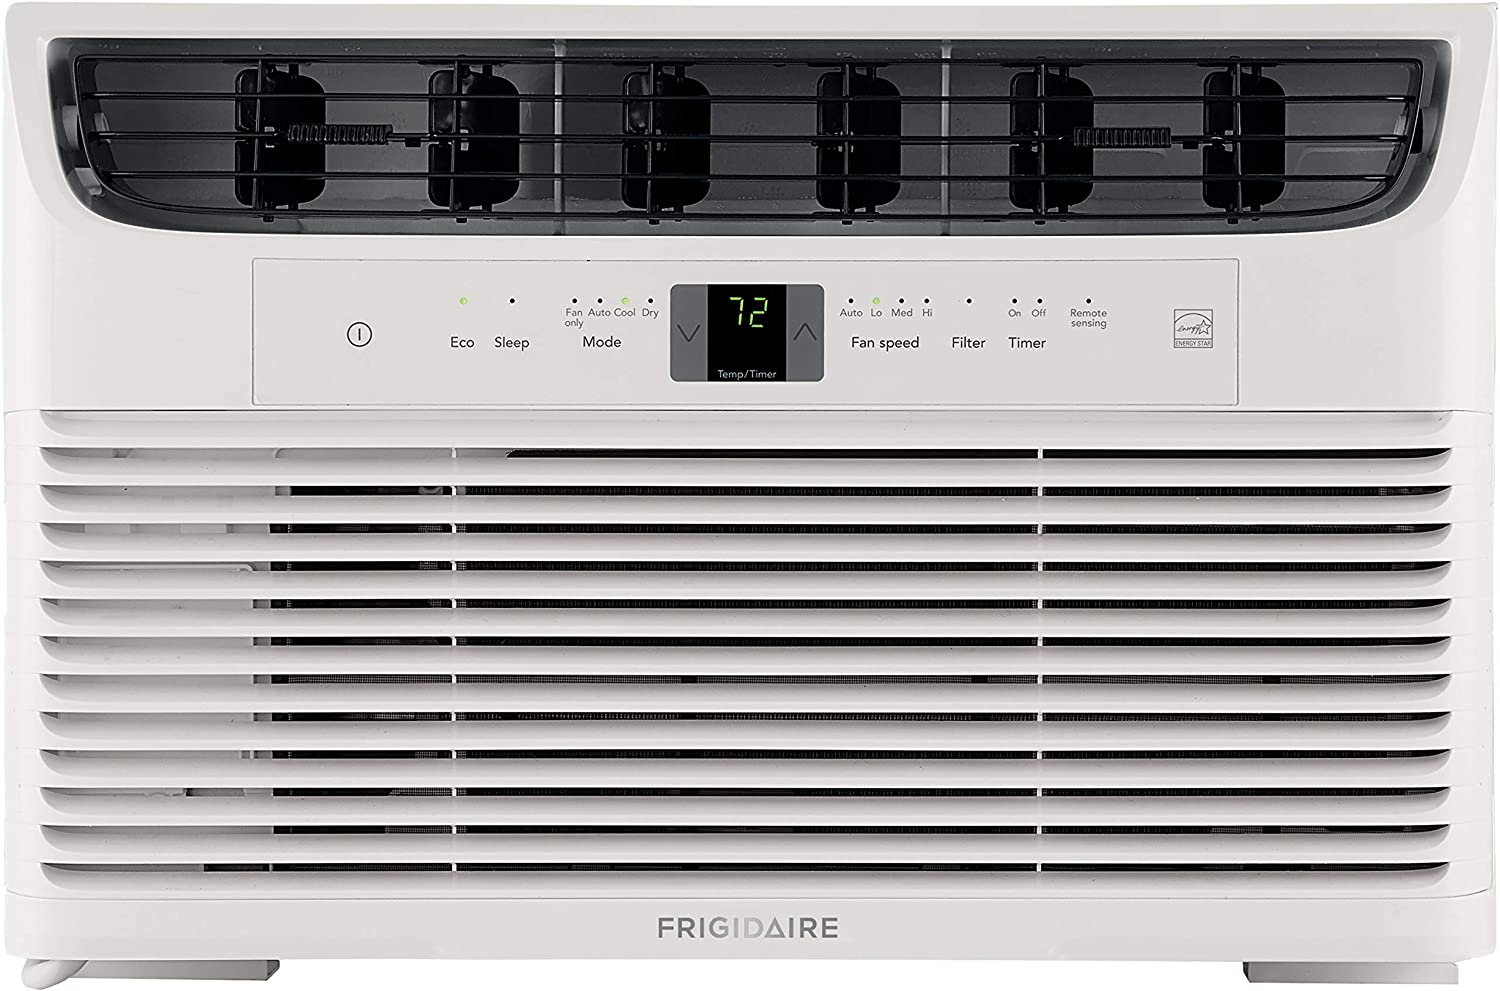 FRIGIDAIRE Energy Star 8,000 BTU 115V Window-Mounted Mini-Compact Air Conditioner with Full-Function Remote Control, White